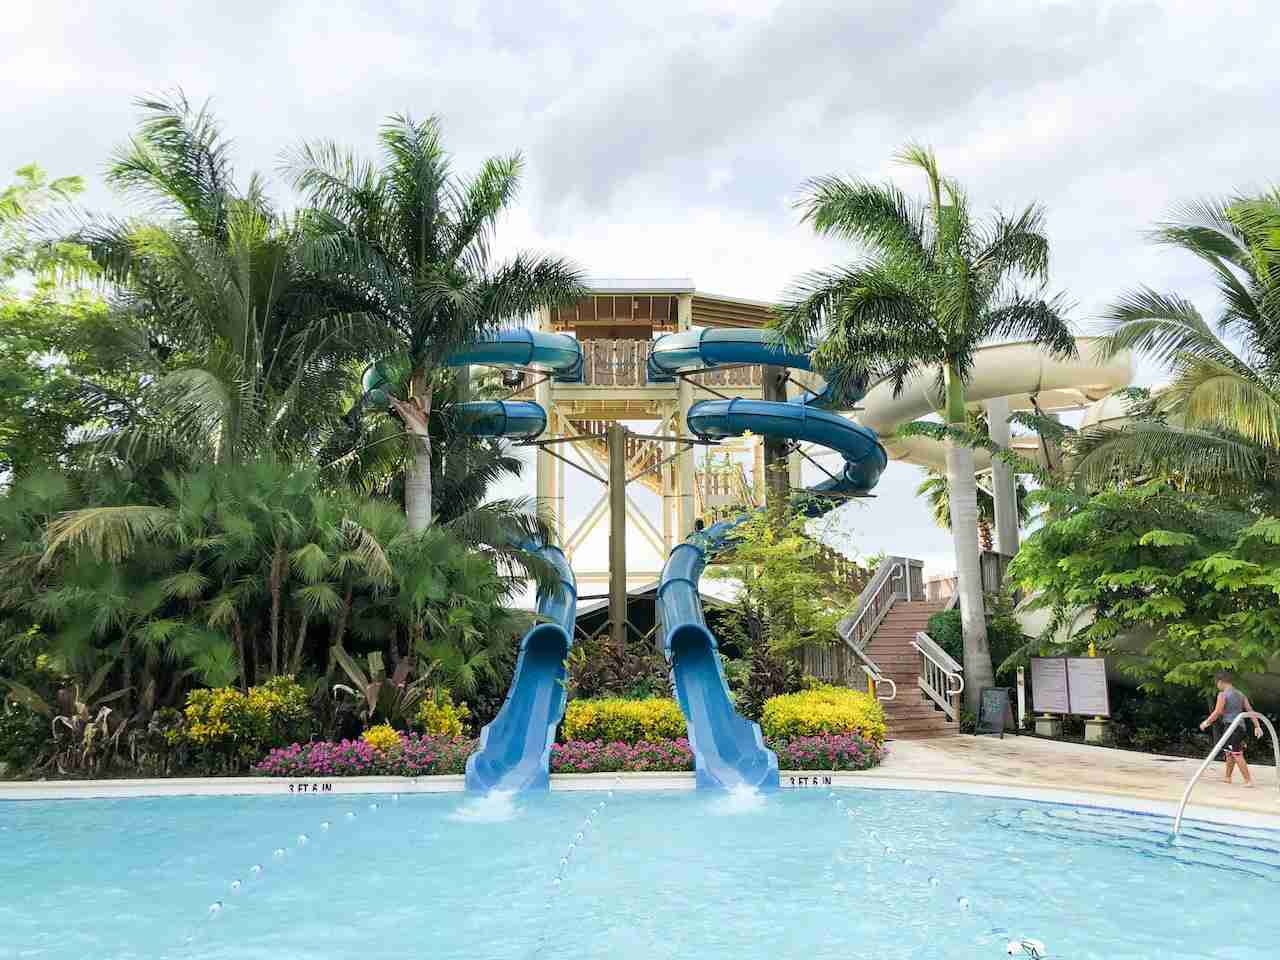 Use a Hyatt award to play at Hyatt Coconut Point in Florida